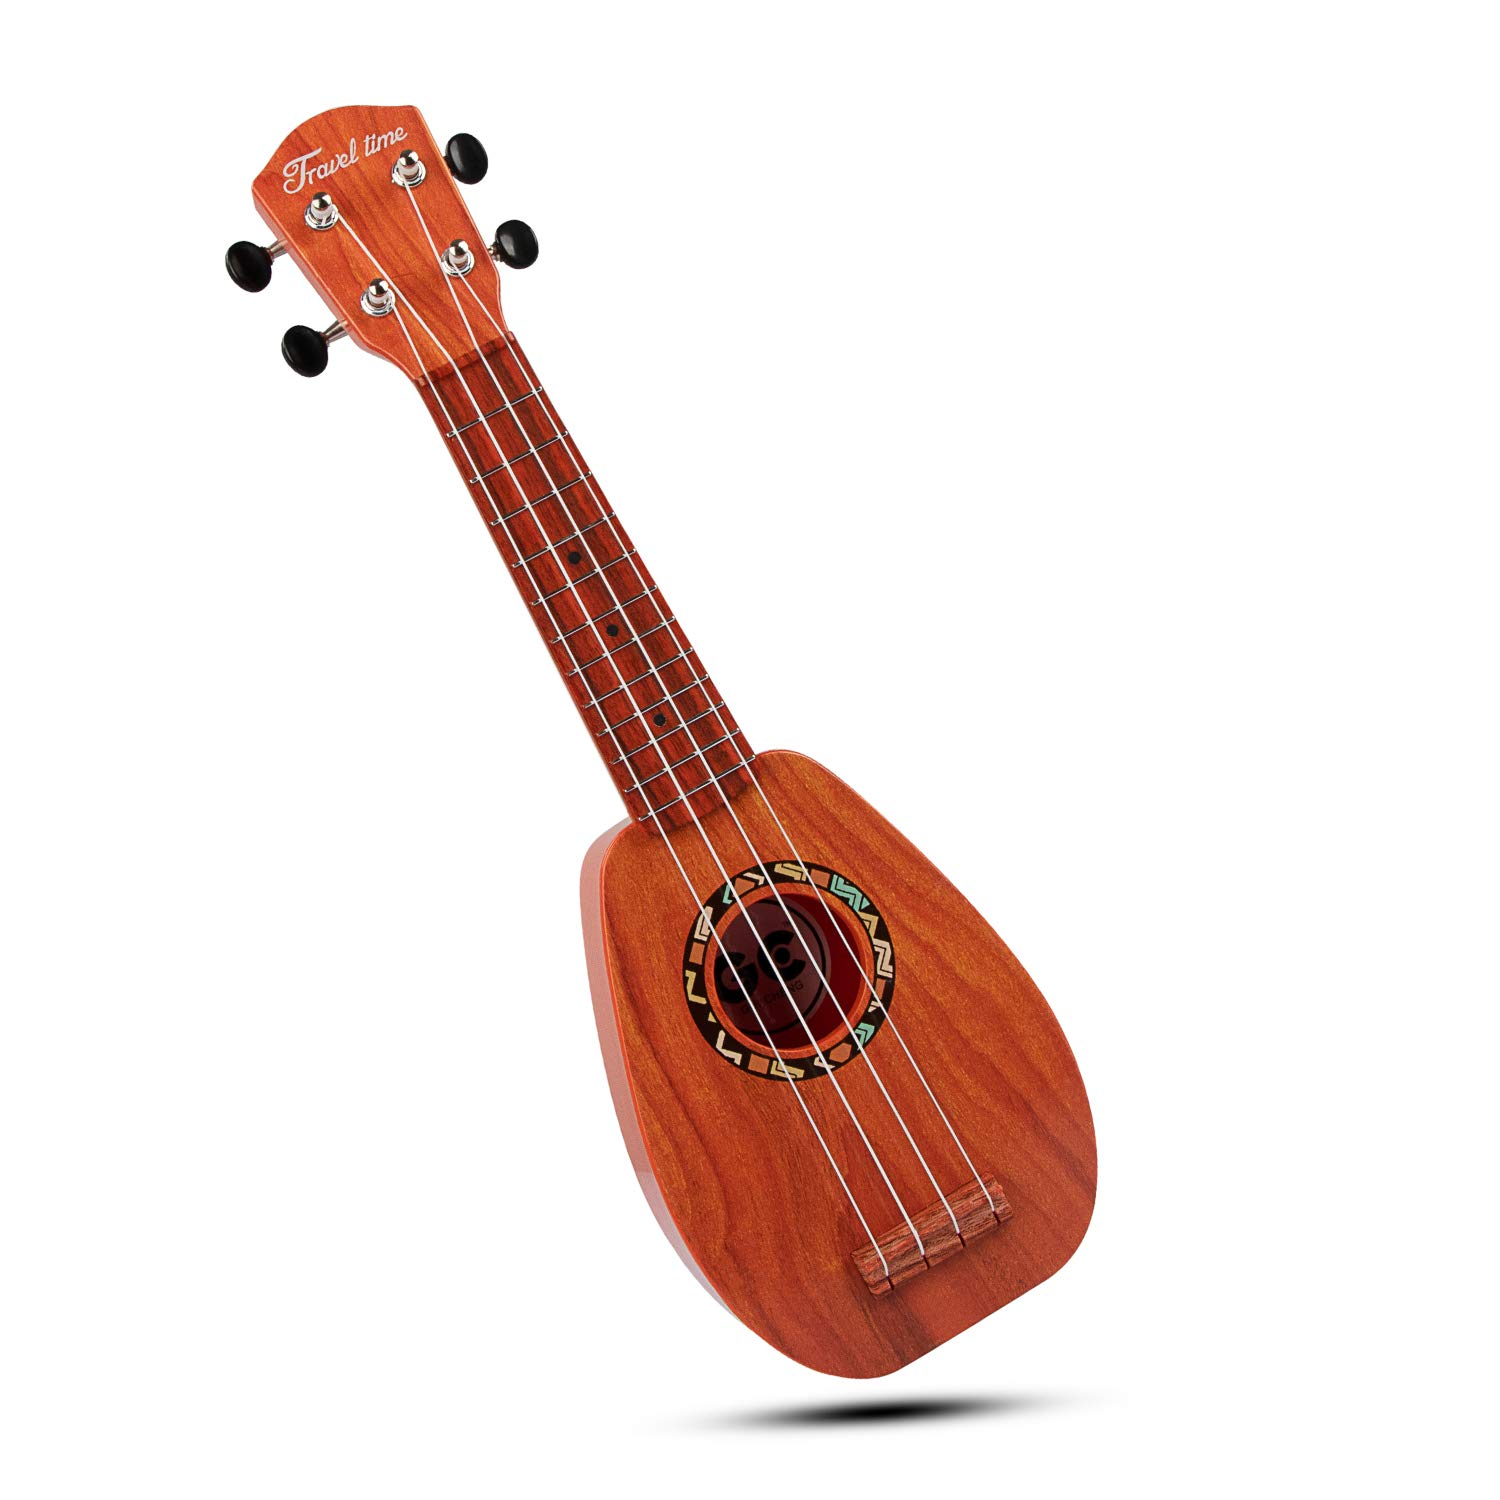 SAOCOOL Kids Guitar, 17 inch Mini Kids Ukulele Guitar Child Guitar Toy, 4 String Toy Guitar The Best Childrens Guitar Gift for Girls and Boys (Sequoia Color)